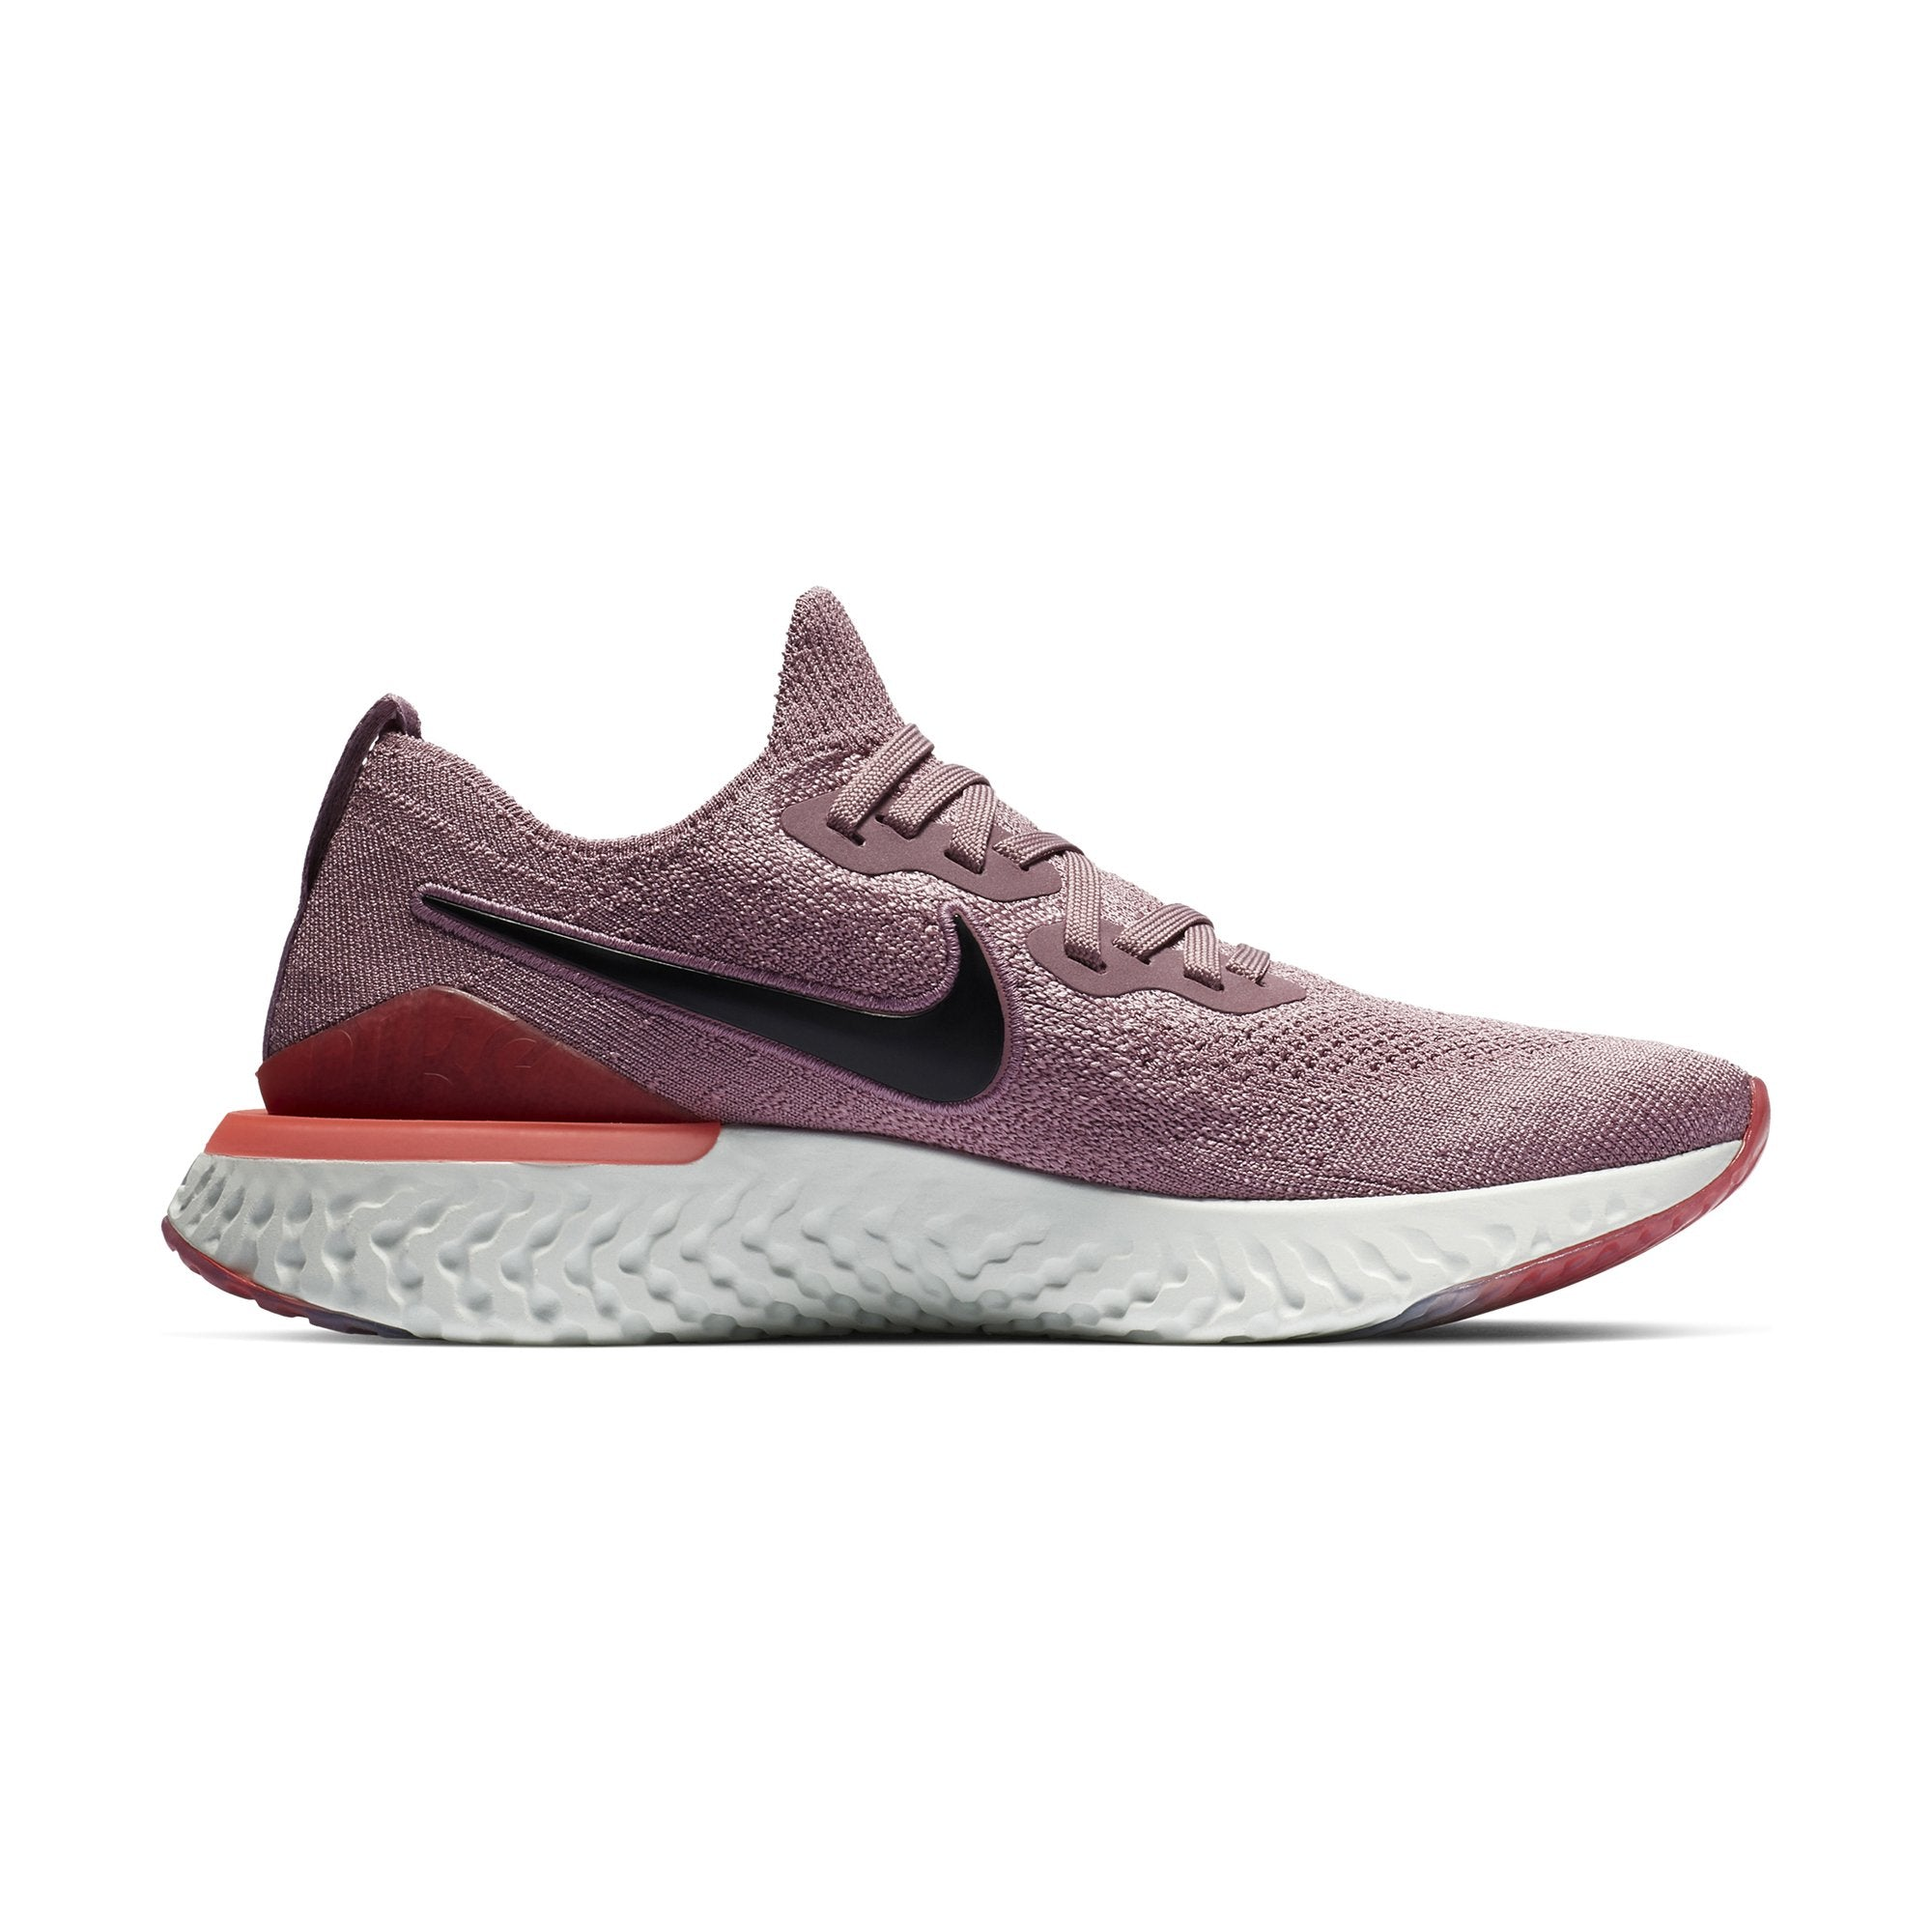 new style d994d ffeec Buy Nike Women Epic React Flyknit 2 Running Shoes, Plum Dust Black Ember  Glow Online in Singapore   Royal Sporting House